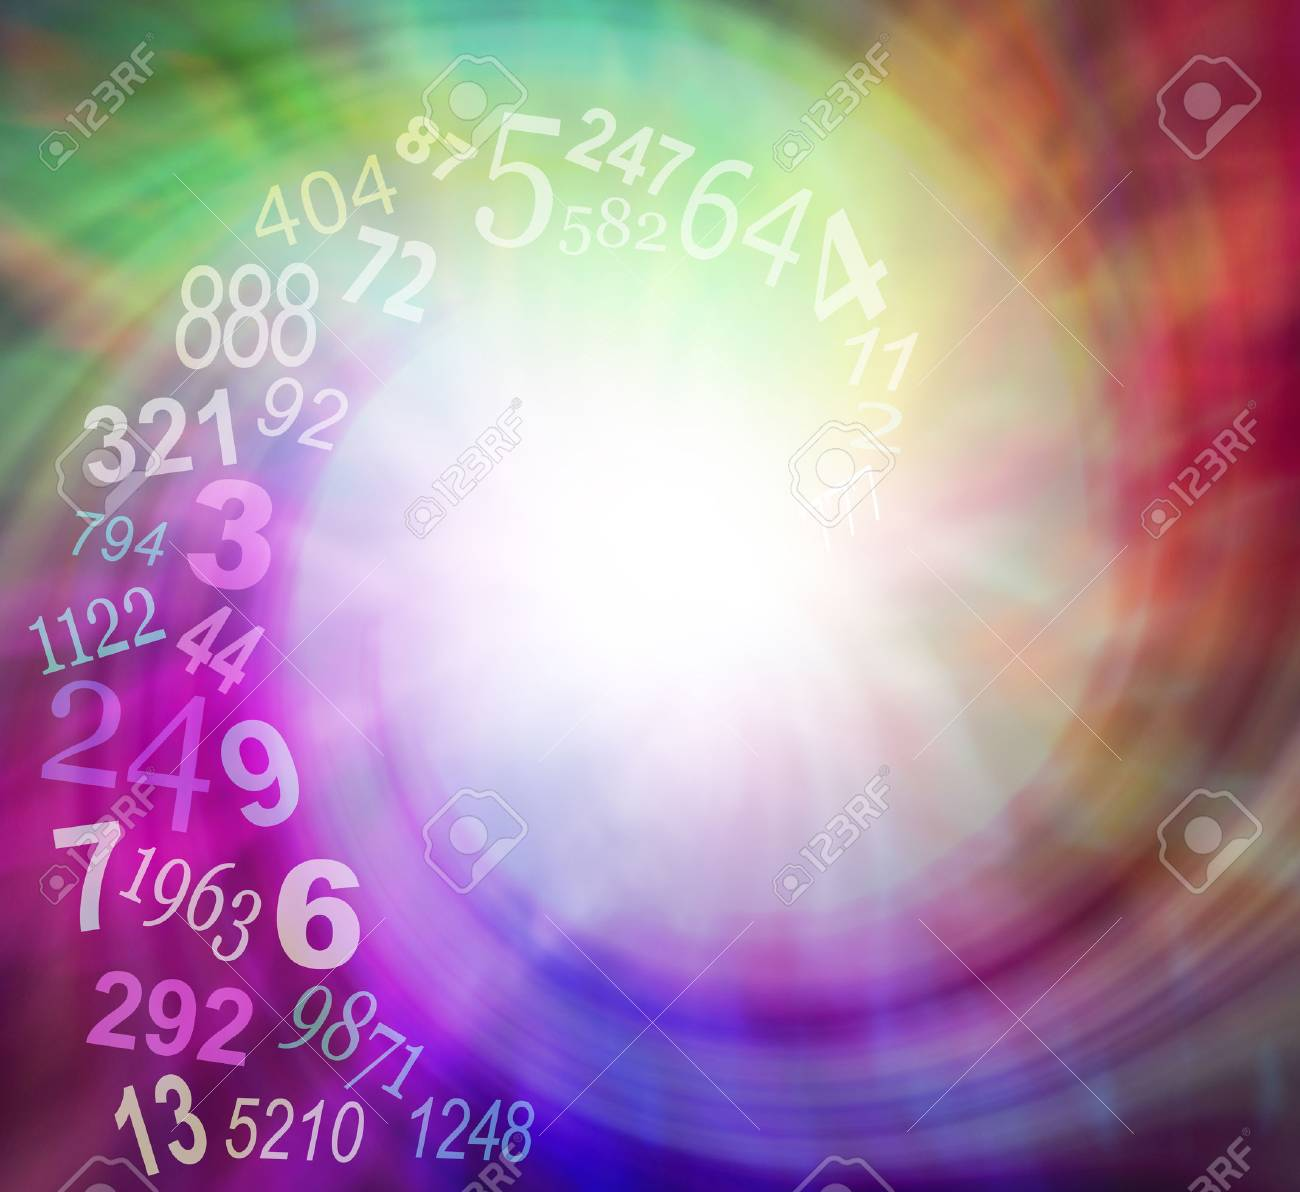 Image result for spiraling numbers